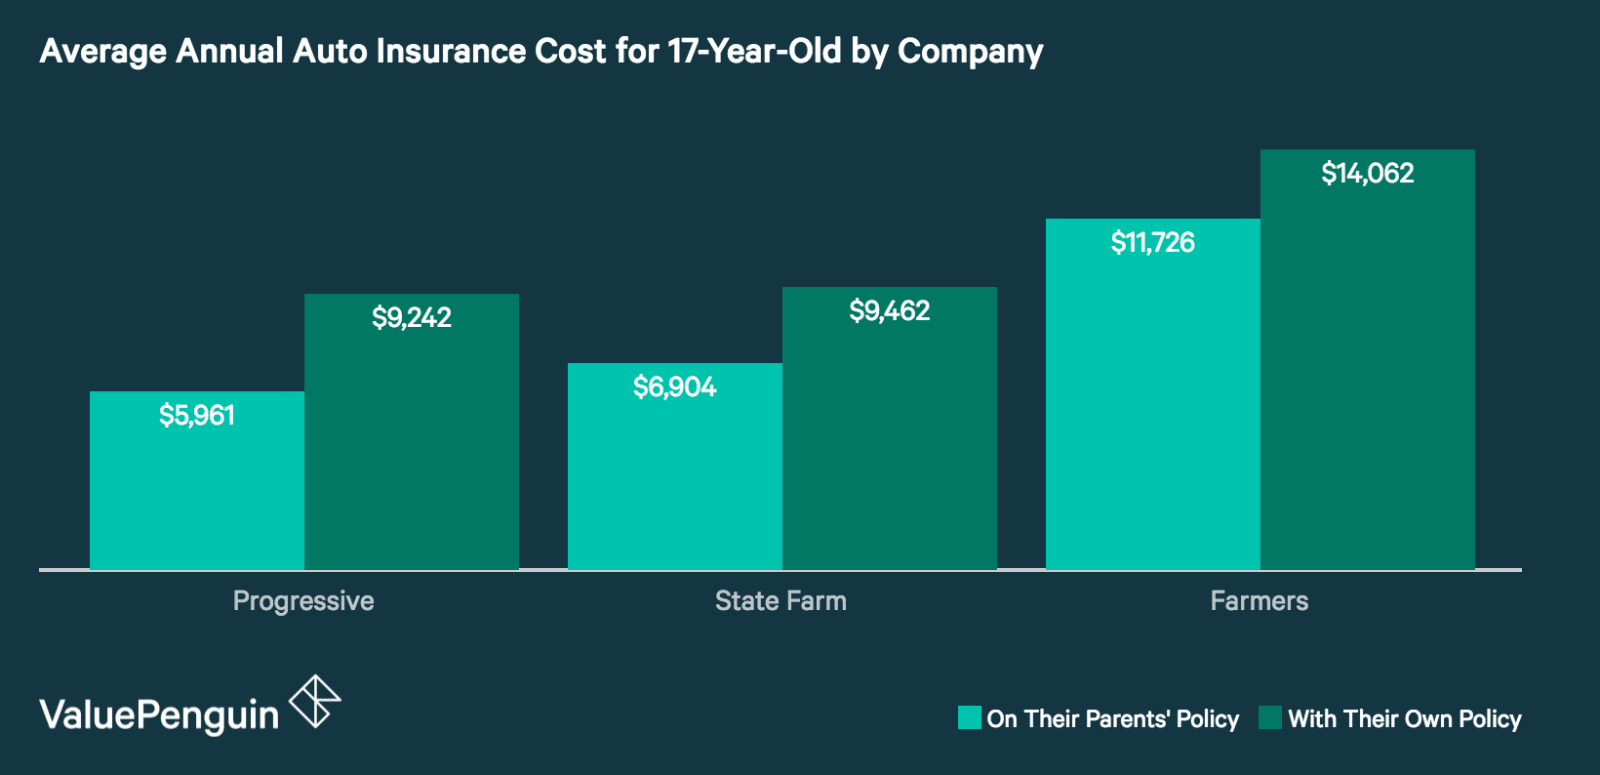 How Much Is Car Insurance for a 17-Year-Old? - ValuePenguin